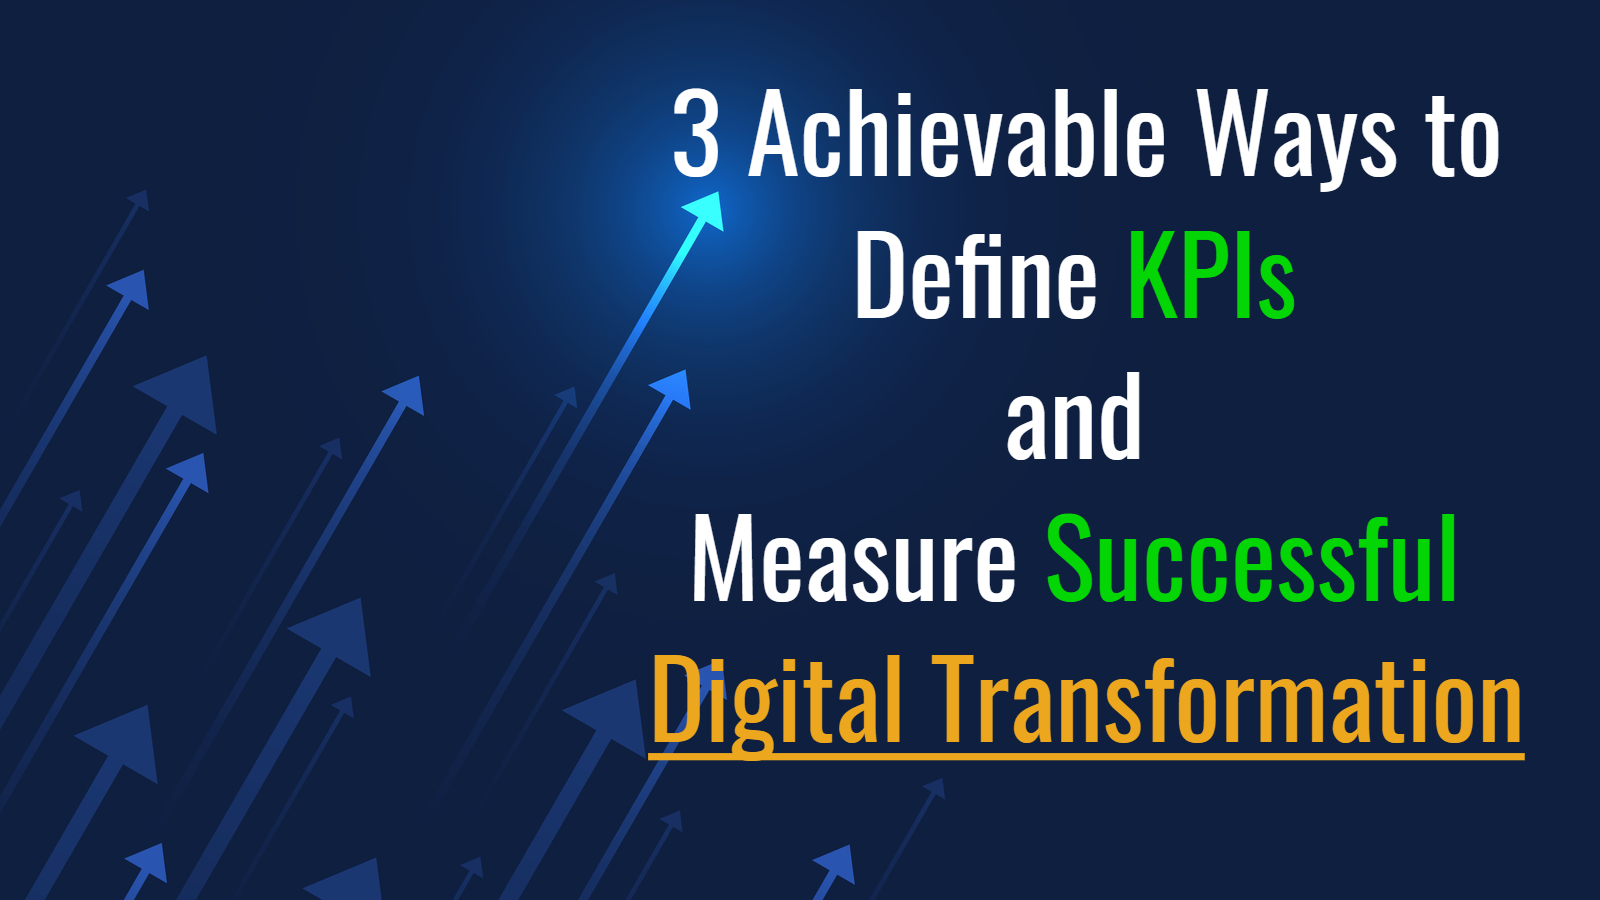 3 Achievable Ways to Define KPIs and Measure Successful Digital Transformation - Isaac Sacolick